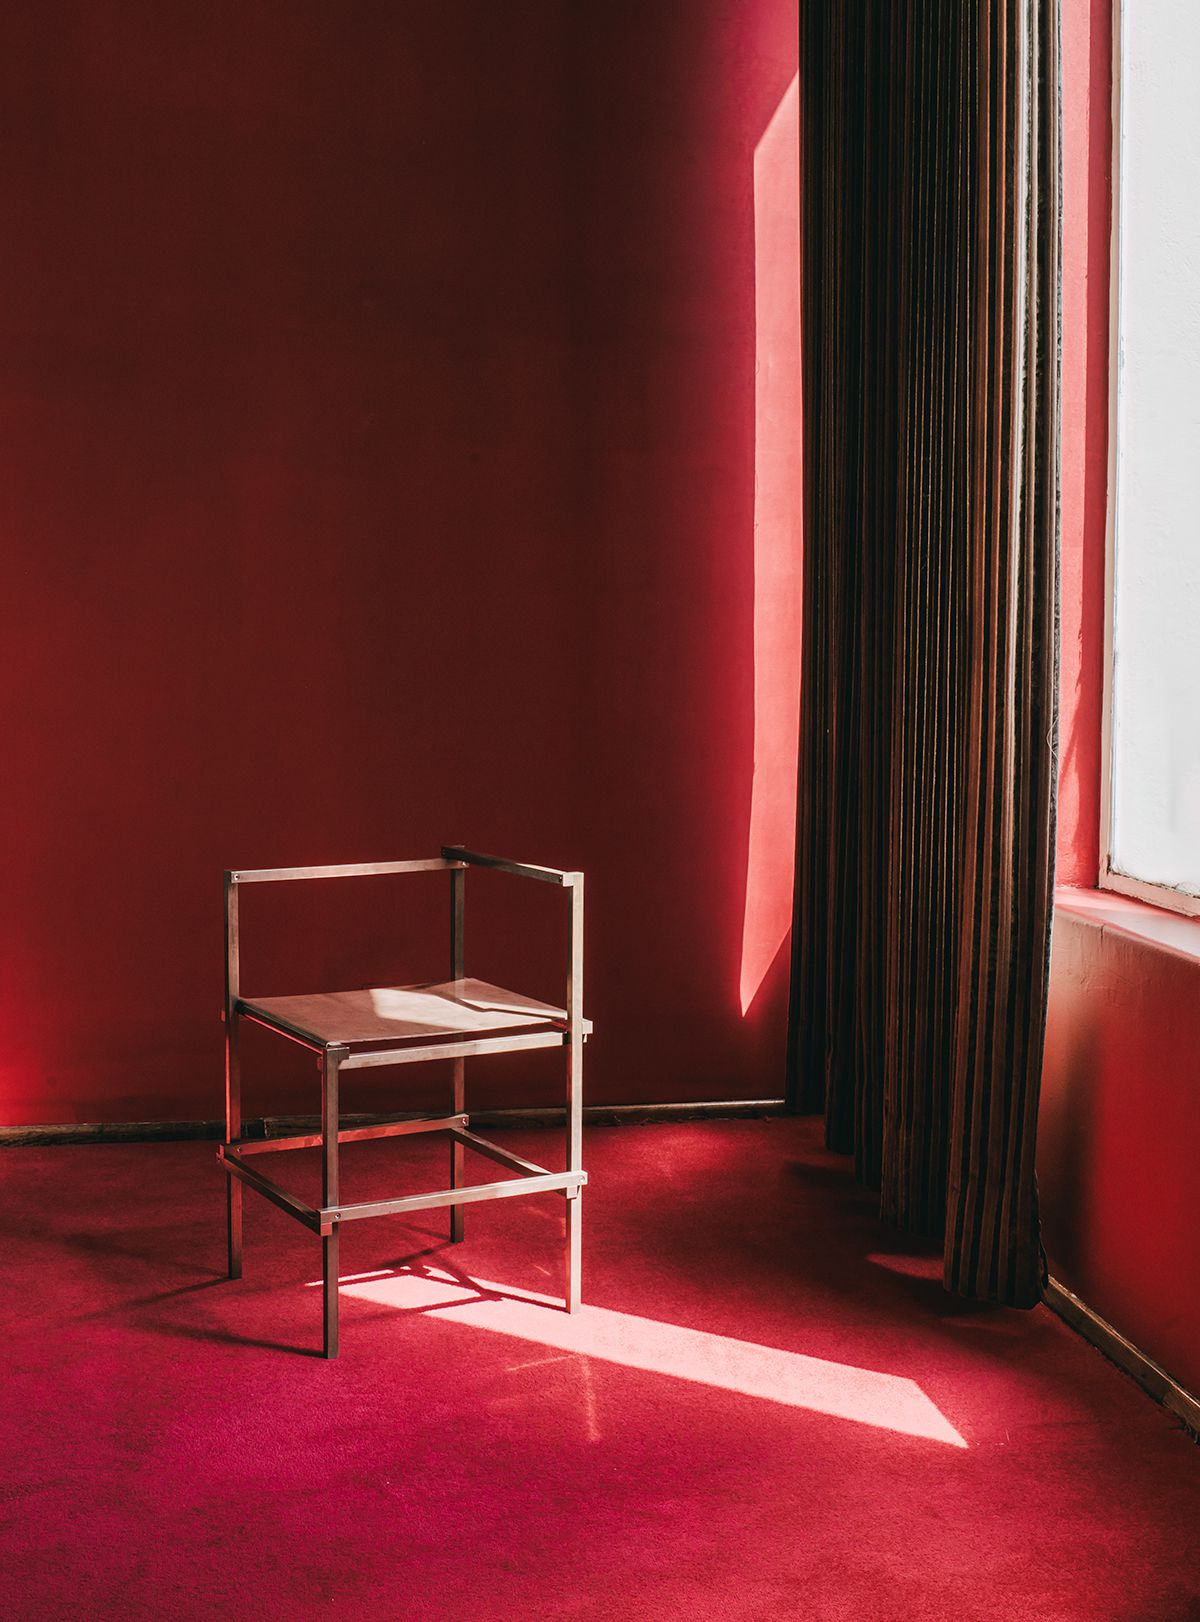 A room with red walls and floors. There is a solitary stool that is sitting in the sunlight streaming in from one window.